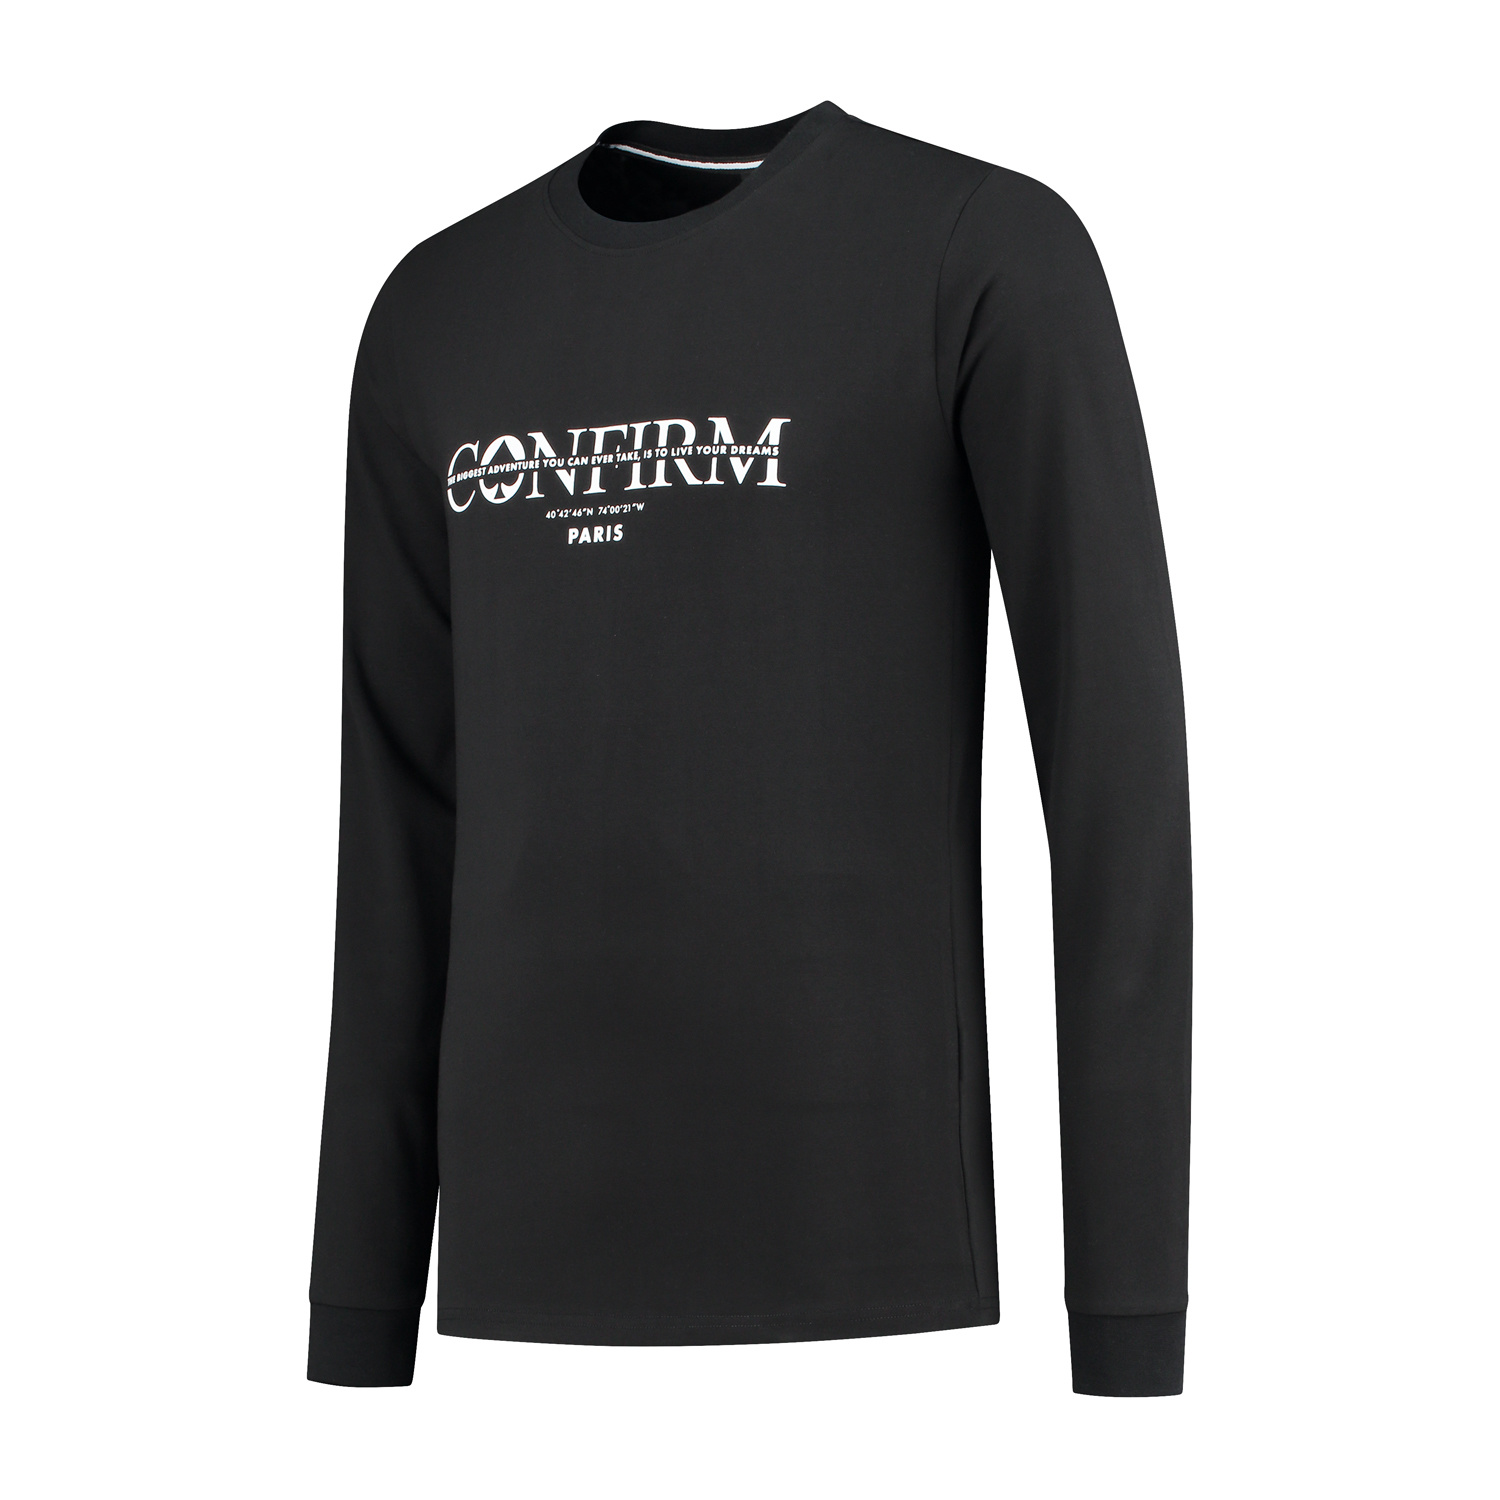 Confirm Brand T-shirt   Adventure Long Sleeve -  Black-2